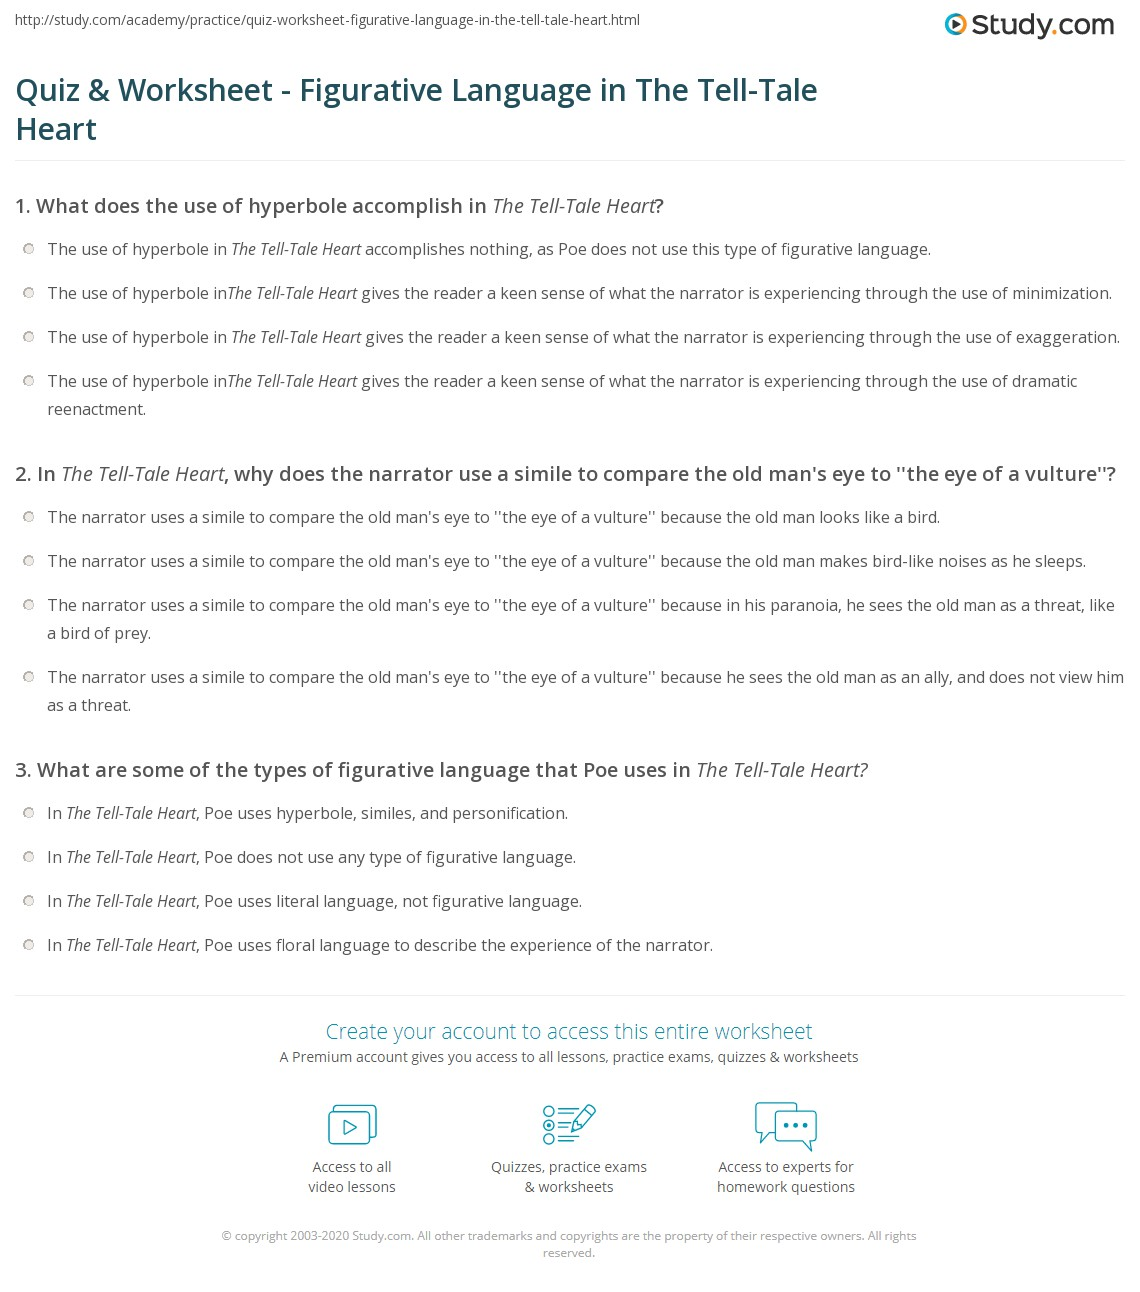 quiz worksheet figurative language in the tell tale heart  print figurative language in the tell tale heart worksheet